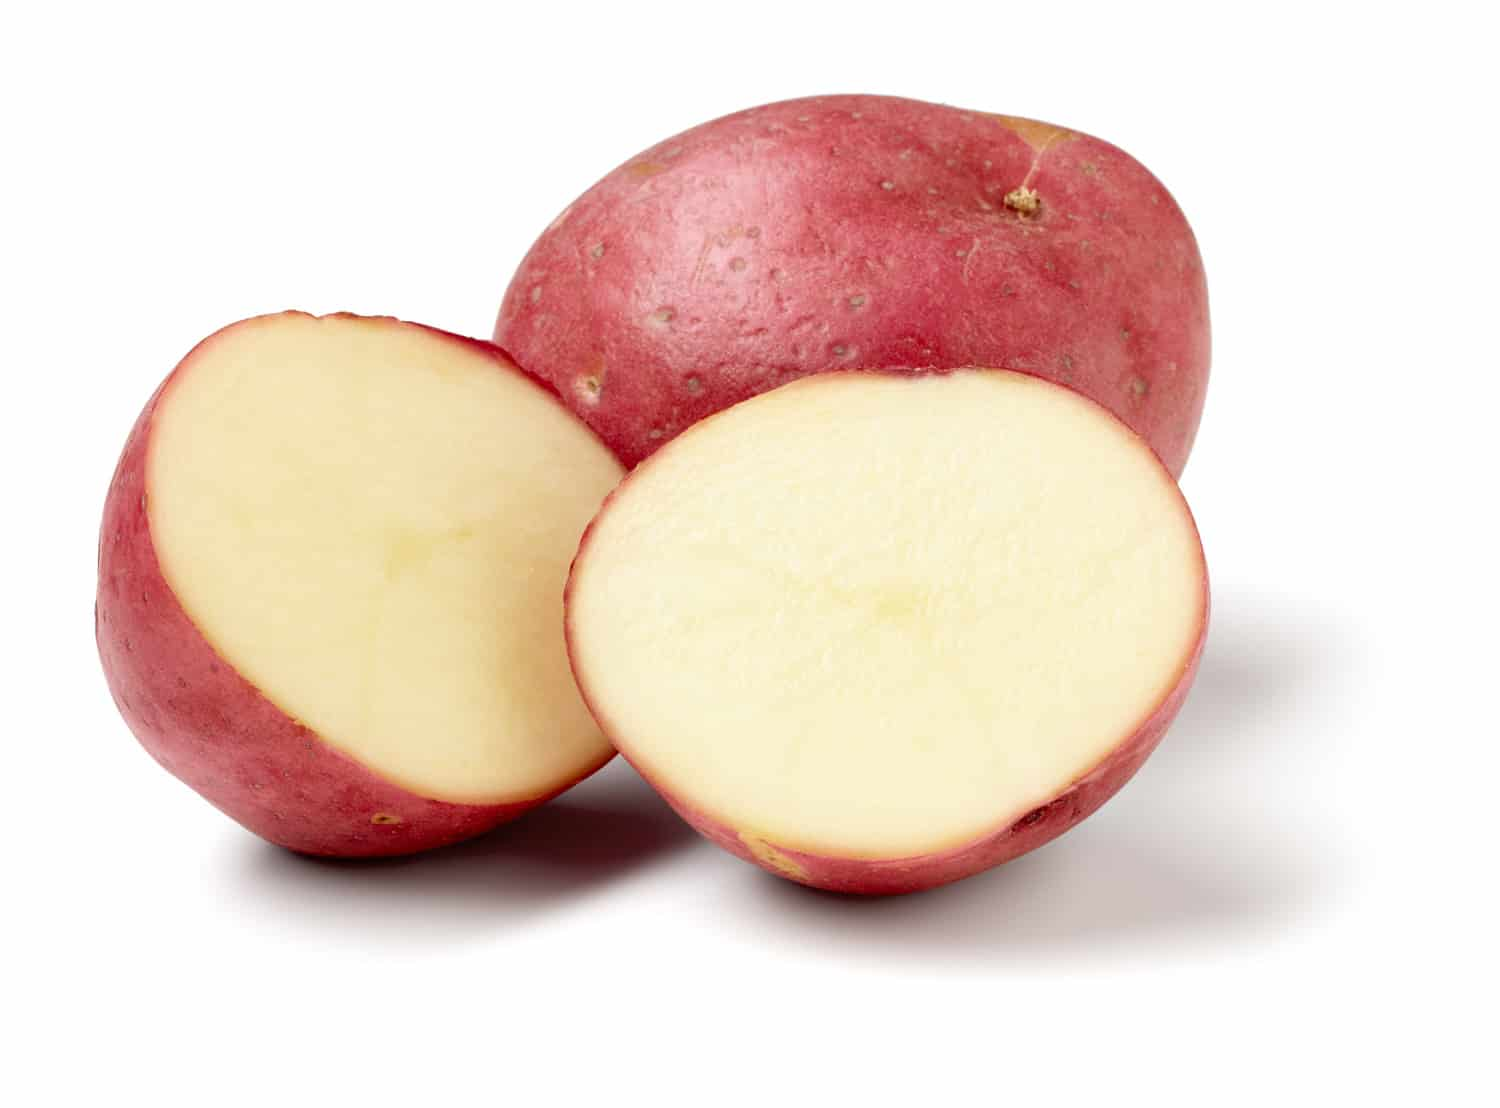 Red potatoes isolated on white background, larger files include clipping path. Color corrected, exported 16 bit depth, retouched and saved for maximum image quality.